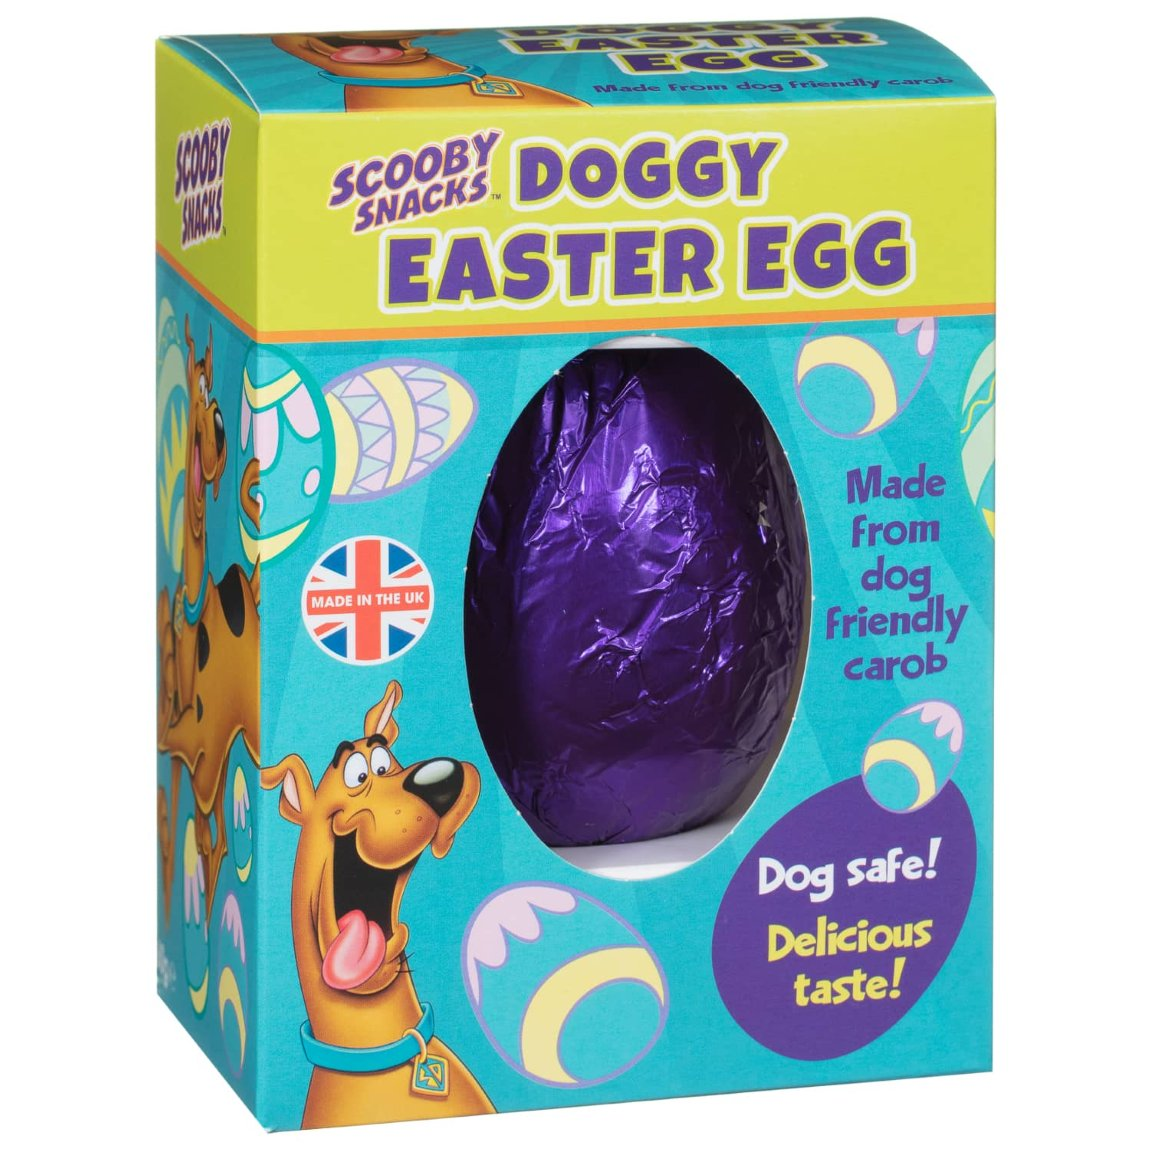 Scooby Snacks Doggy Easter Egg 60g